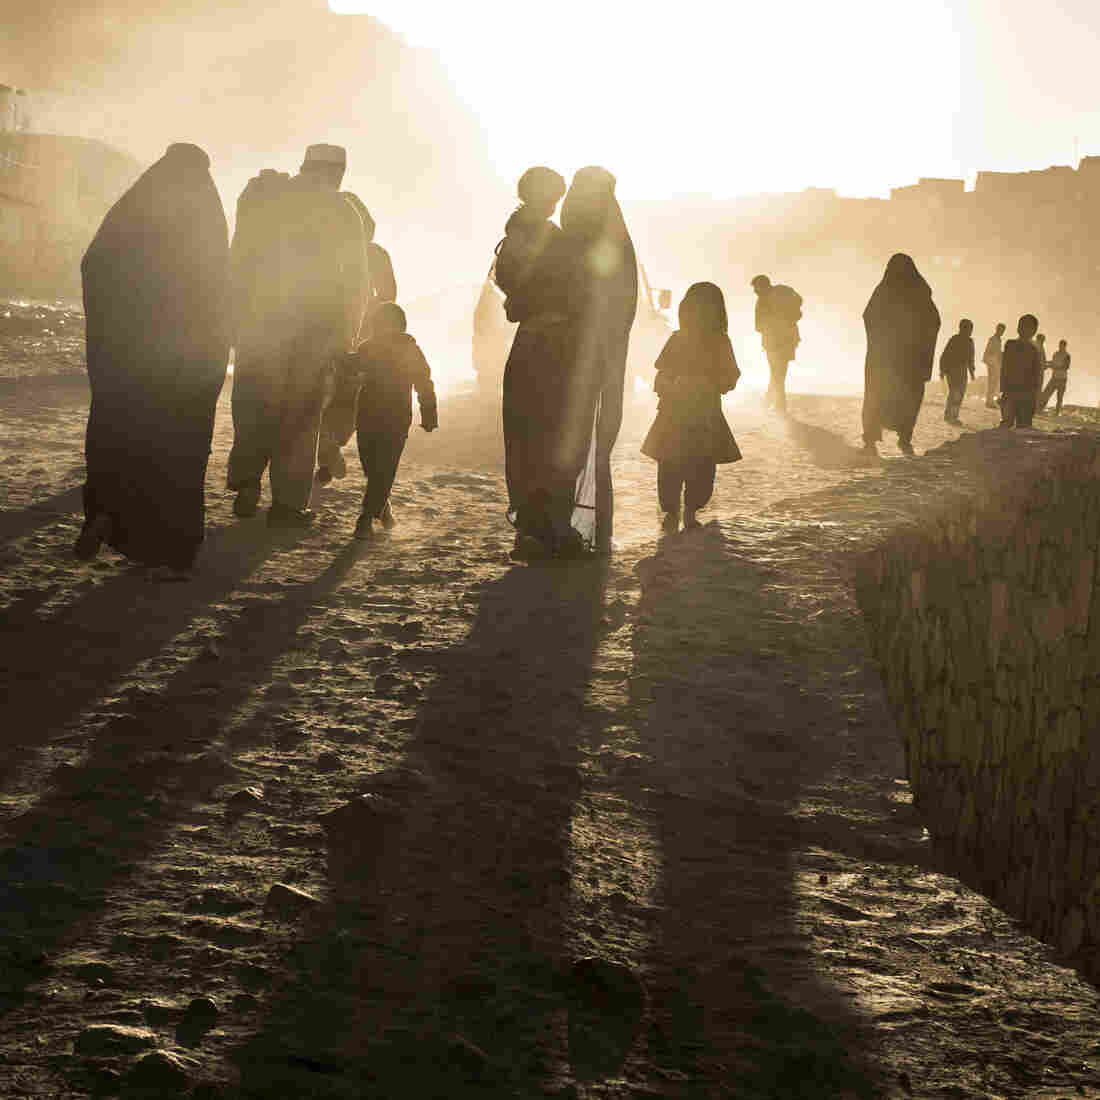 Afghans Begin New Exodus, Often At Great Cost